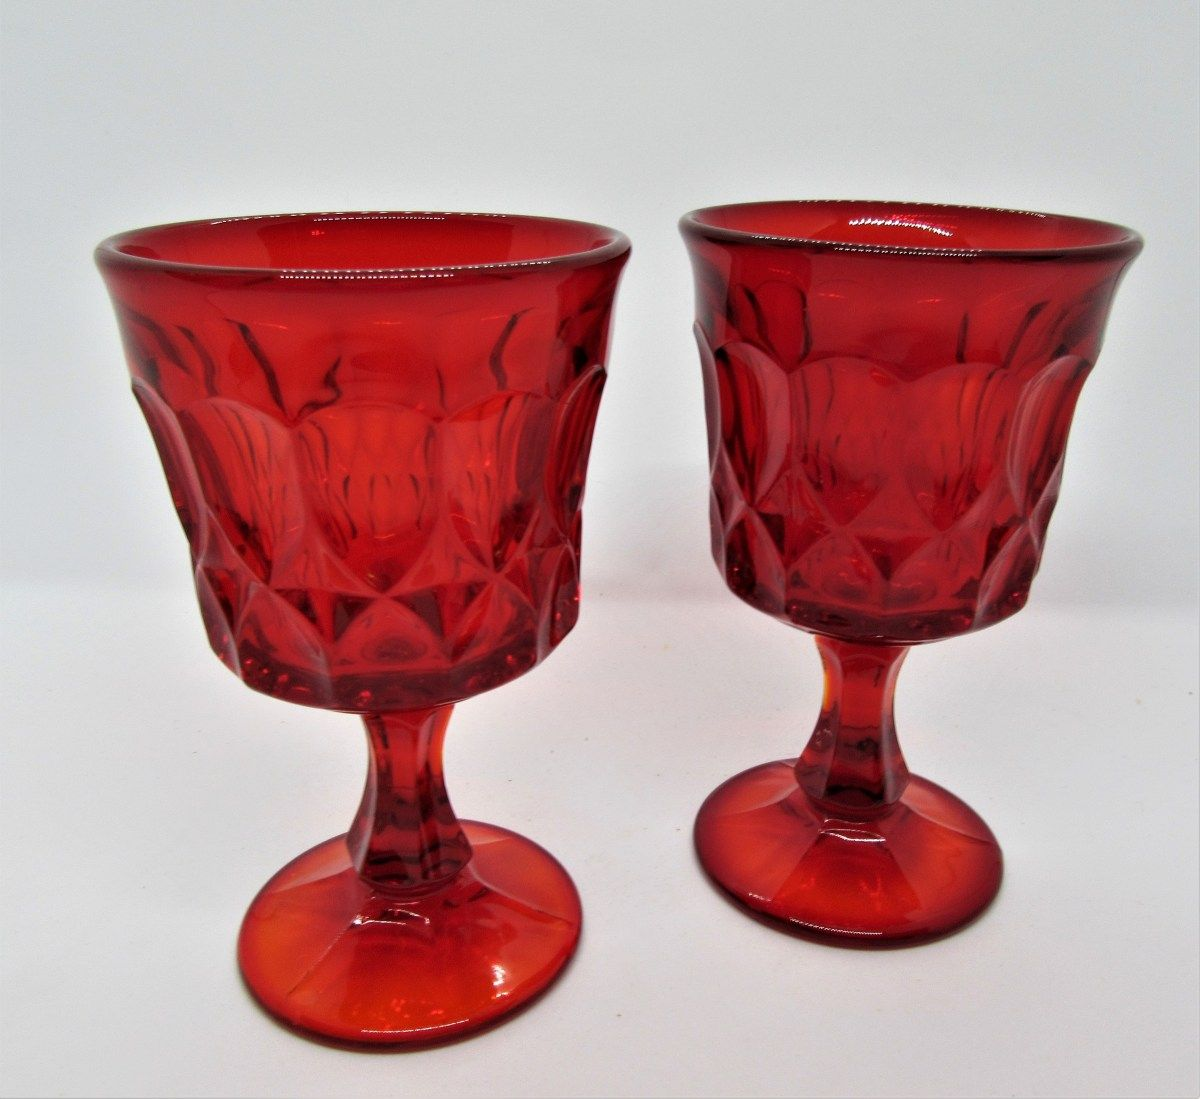 Red Wine Goblets Noritake Perspective Set Of 2 70 S Design Vintage Wine Glasses Wine Goblets Noritake